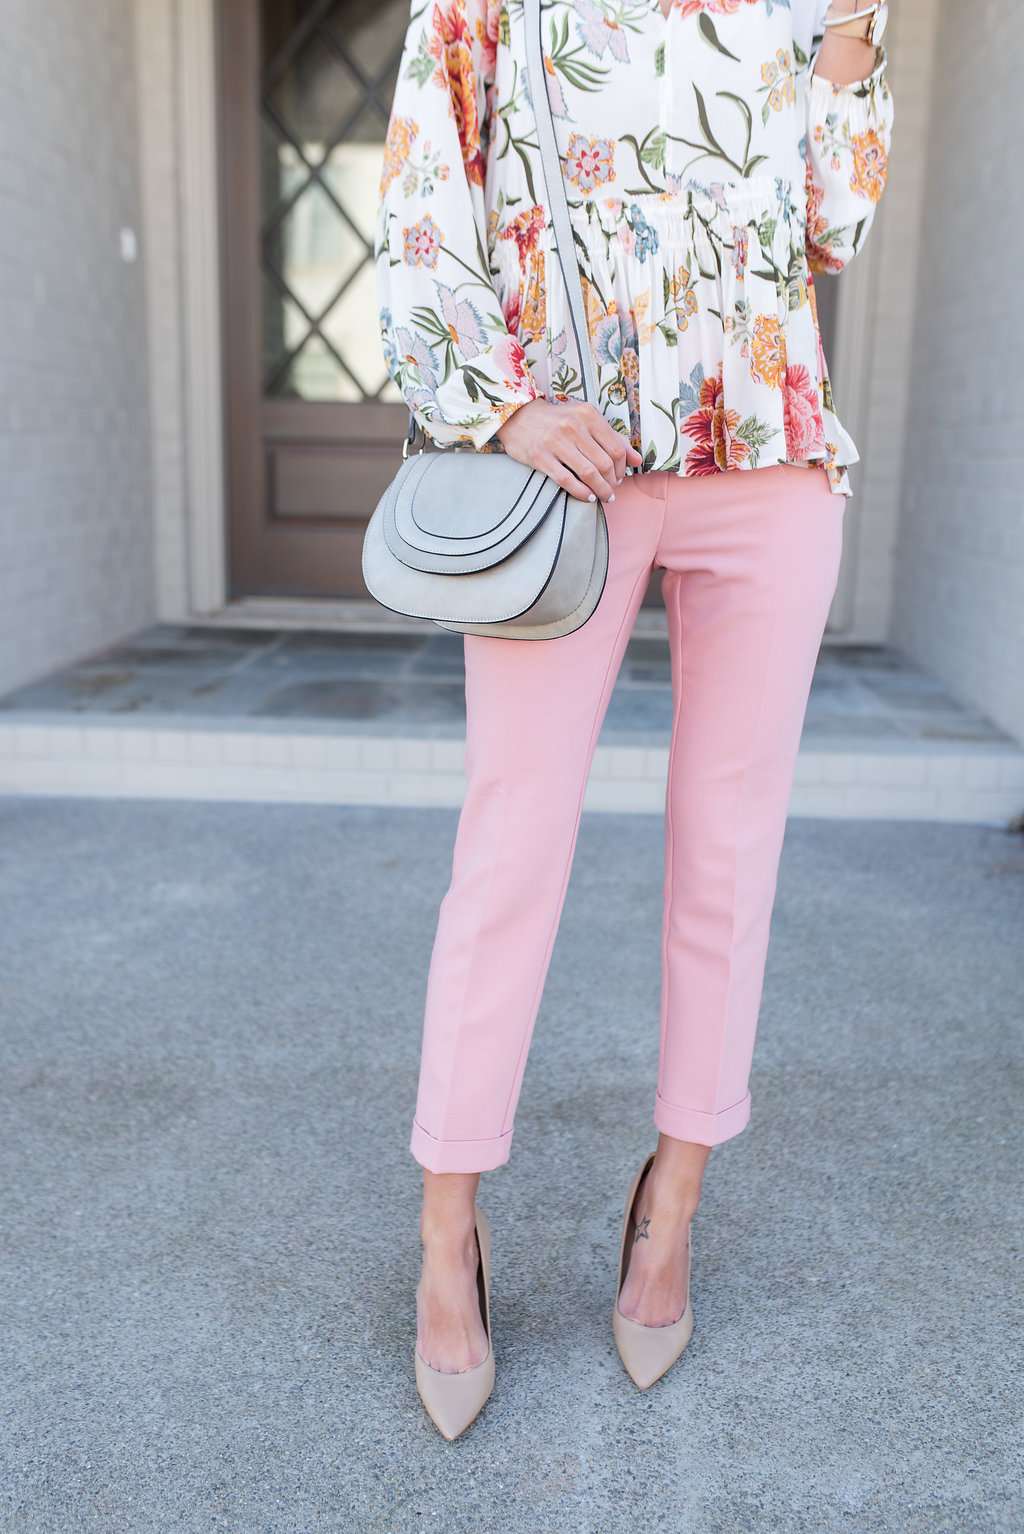 Work Wear Wednesday – Pink Pants